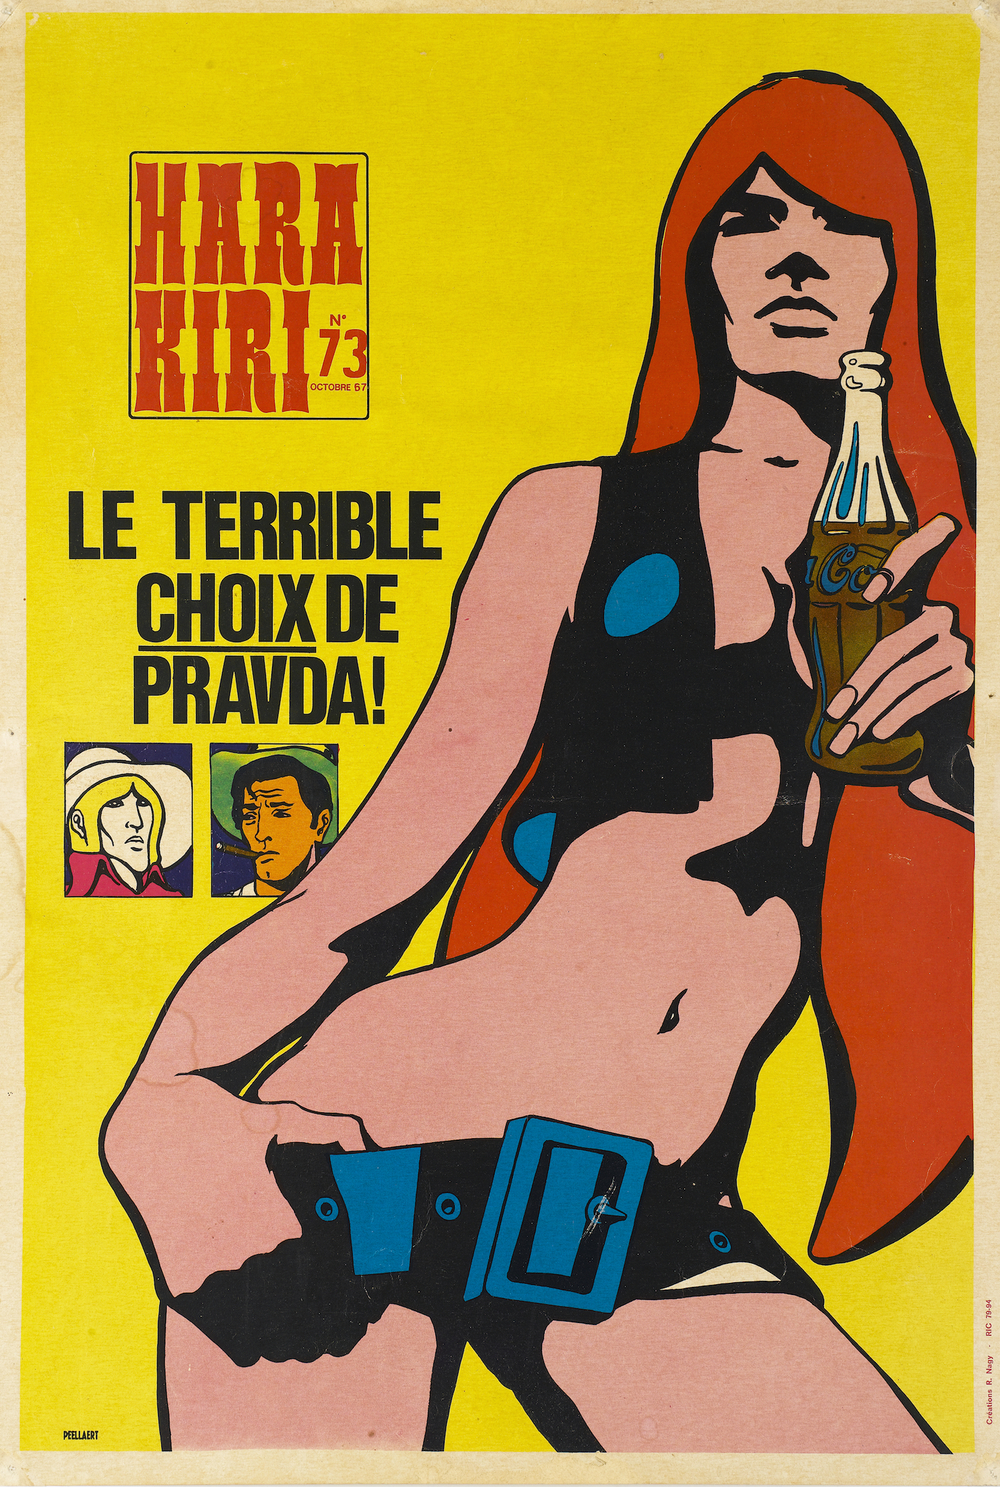 "It was François Cavanna who invited Peellaert to create a recurring comic in the pages of Hara-Kiri. The artist created Pravda, an iconic heroine modeled after Françoise Hardy. Here, Pravda is featured on a poster advertising the October 1967 issue of the counter-cultural publication. This is the first known occurrence of the famous ""Pravda with Coca-Cola"" image."